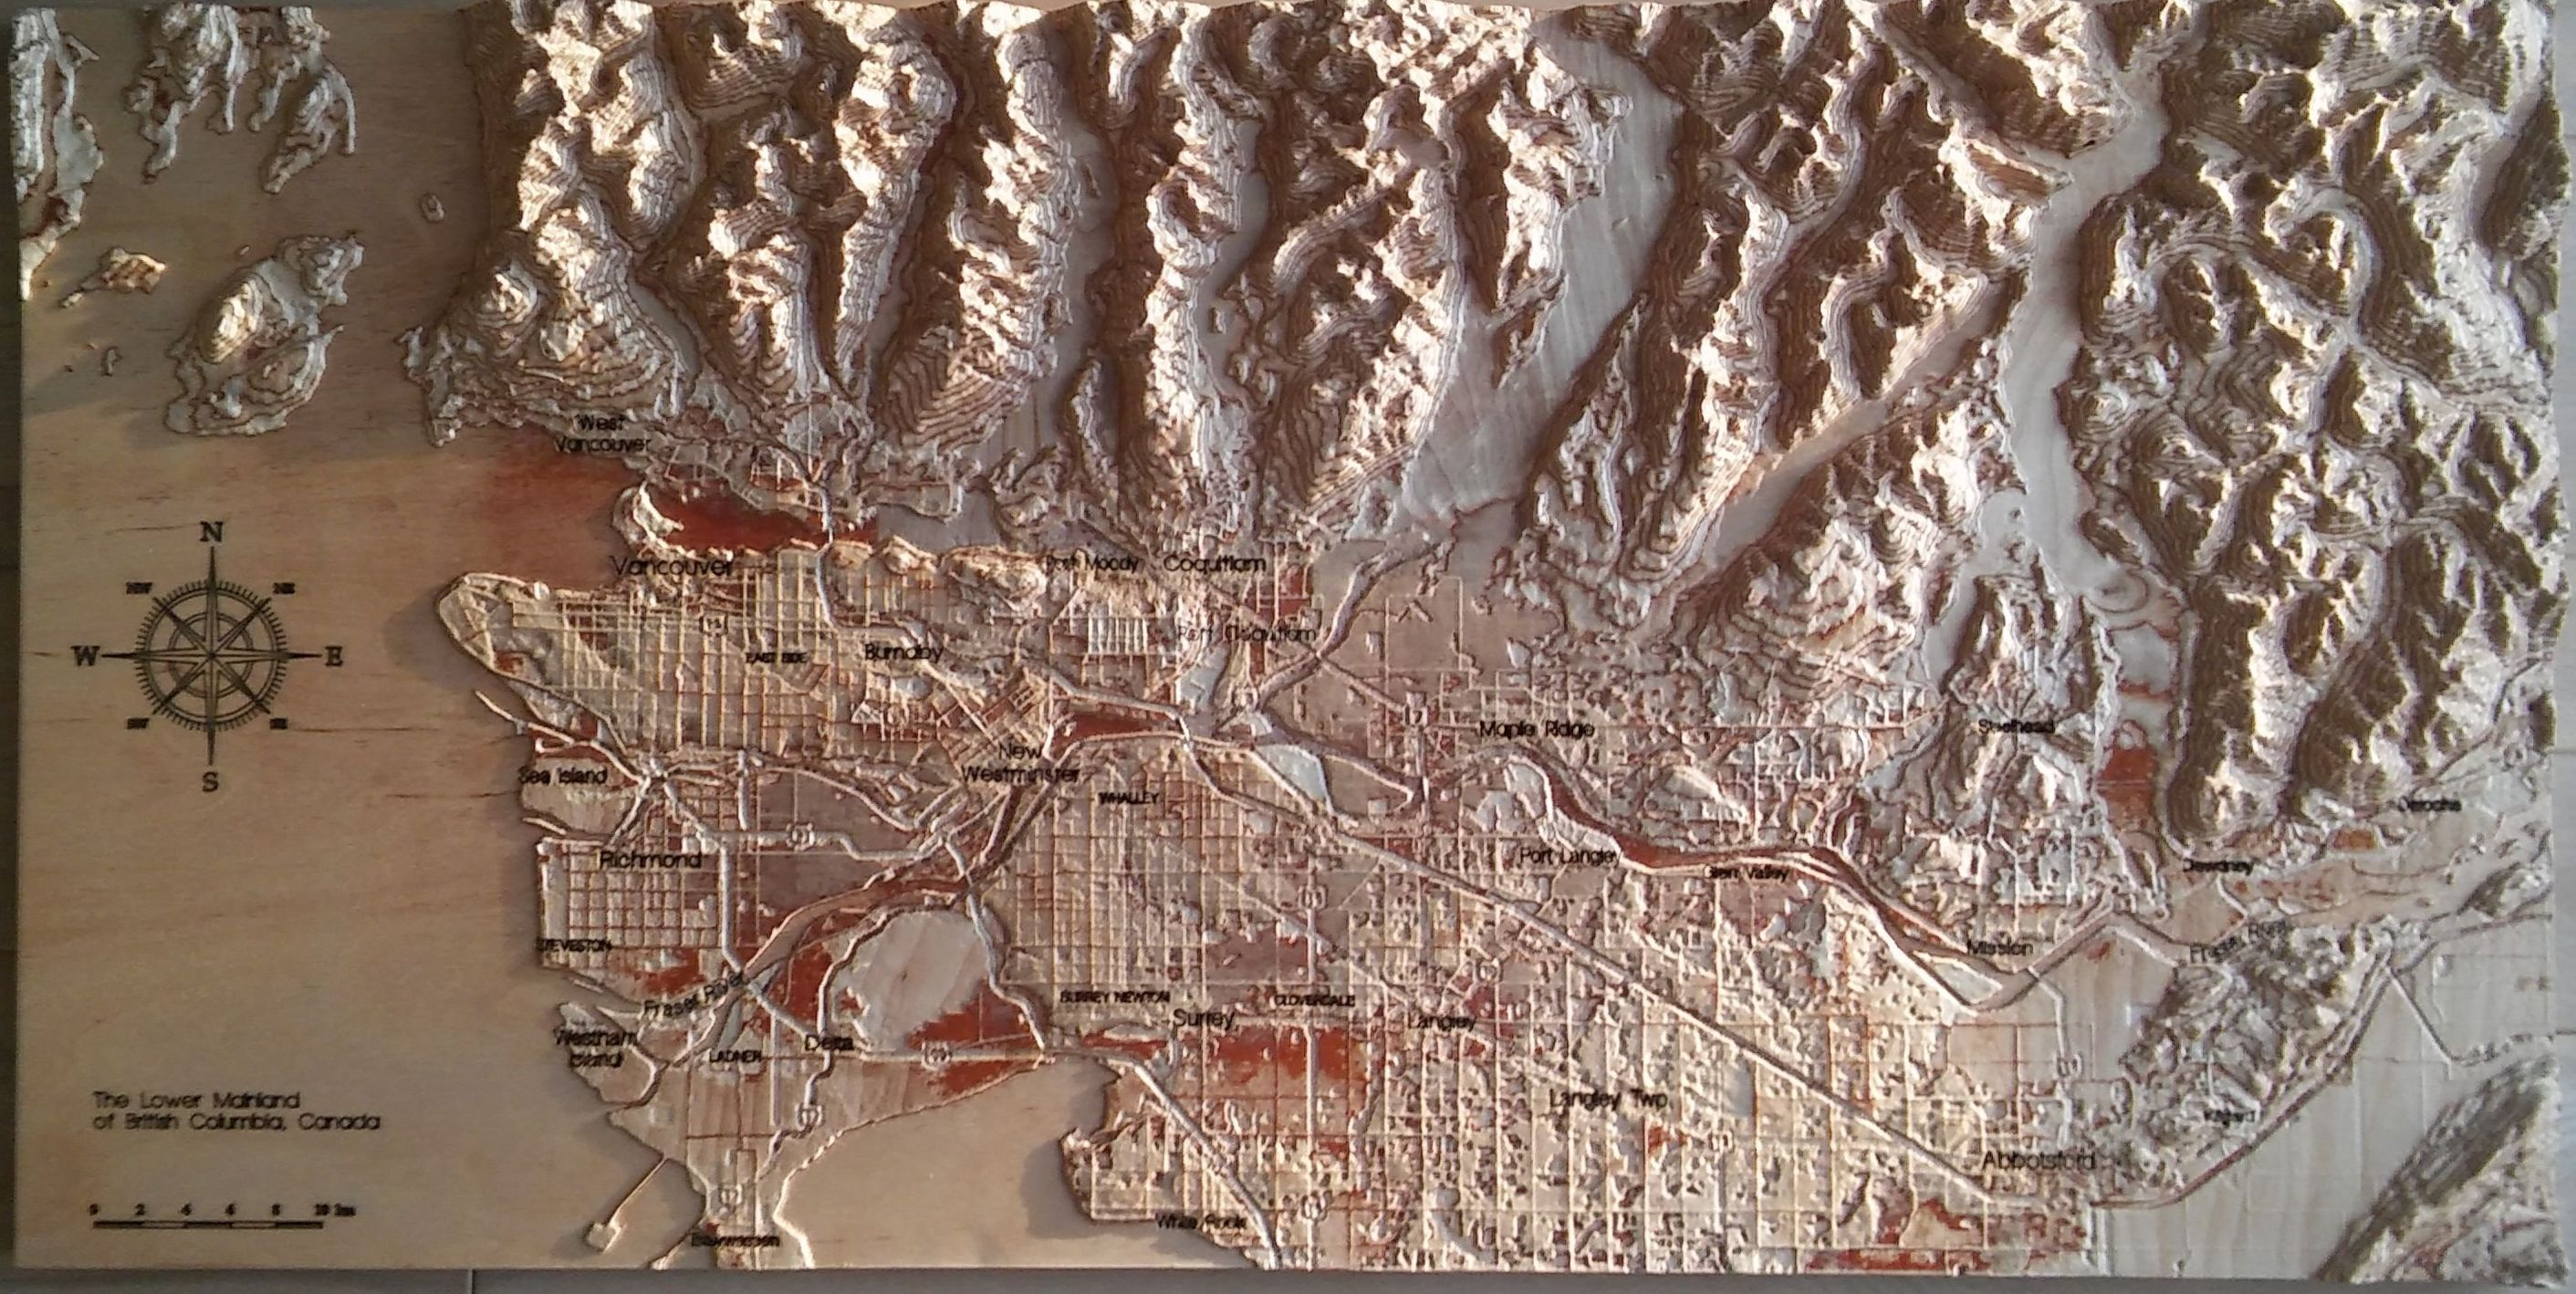 Vancouver, Canada, 3D Wooden Map, Natural Colors in 2019 | 3D wooden on central park map, grand central map, chinatown map, state fair map, memphis map, new york public library map, streets of new york city map, soho map, san francisco map, sugar map, times square map, fargo map,